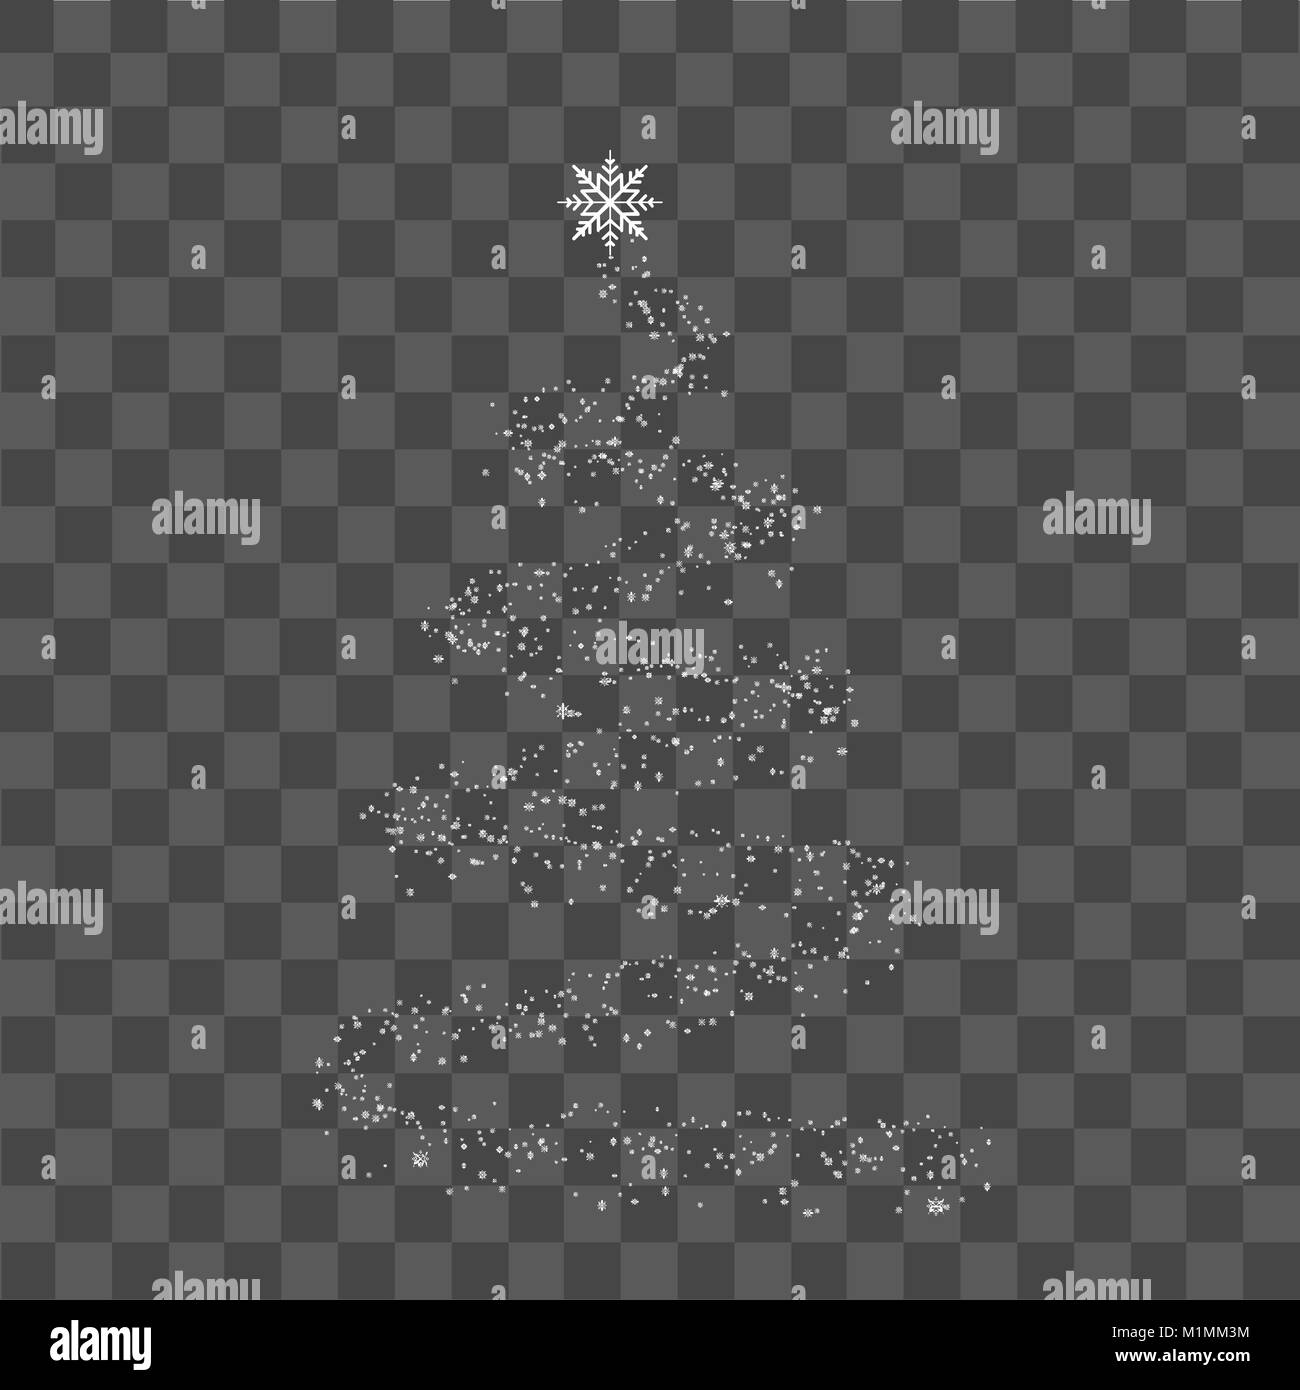 Christmas Tree Transparent Background.Christmas Tree With White Dots And Snow On Transparent